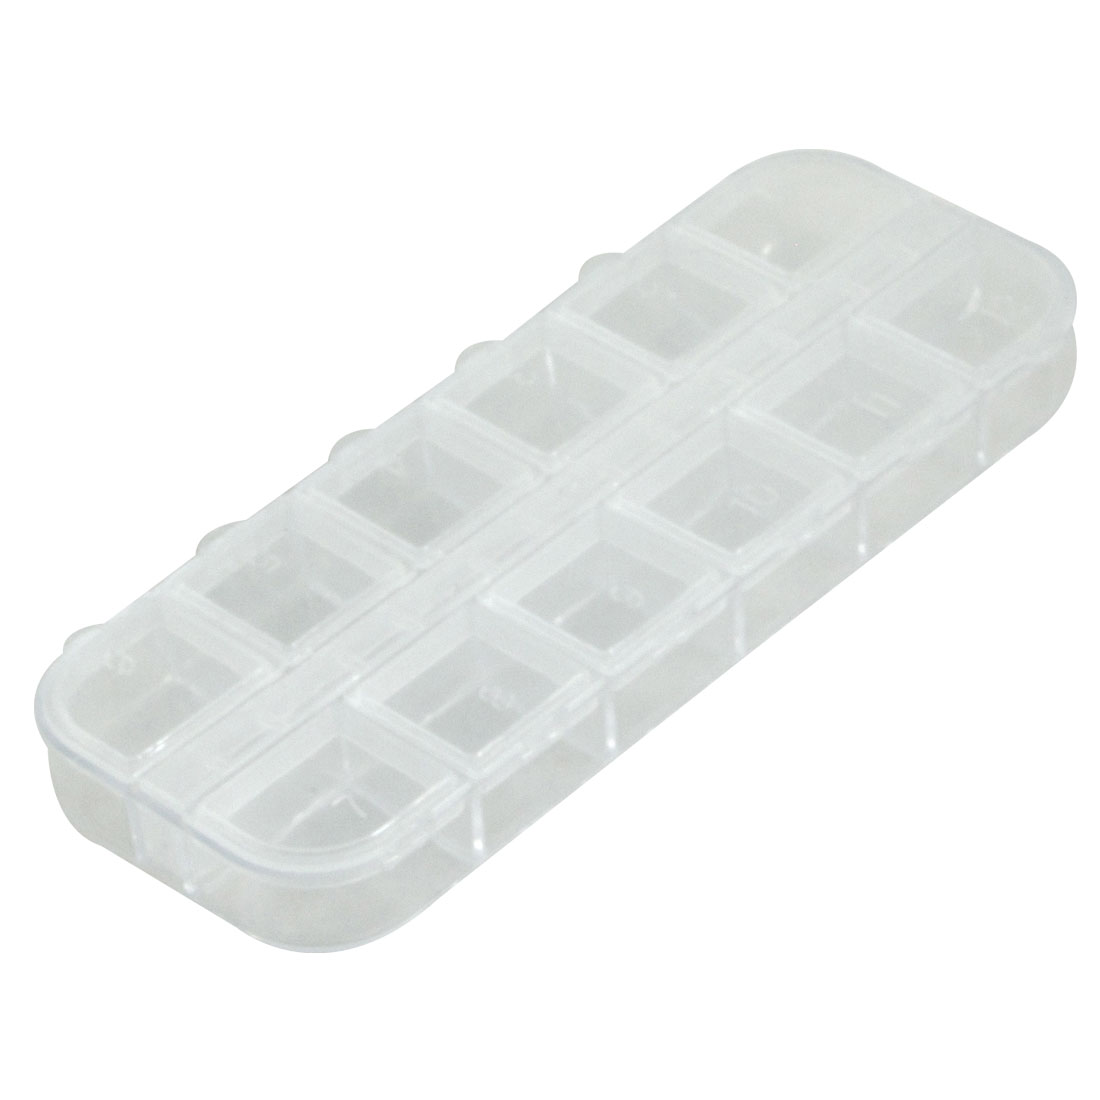 Clear White Transparent Plastic Components Collect Case Box